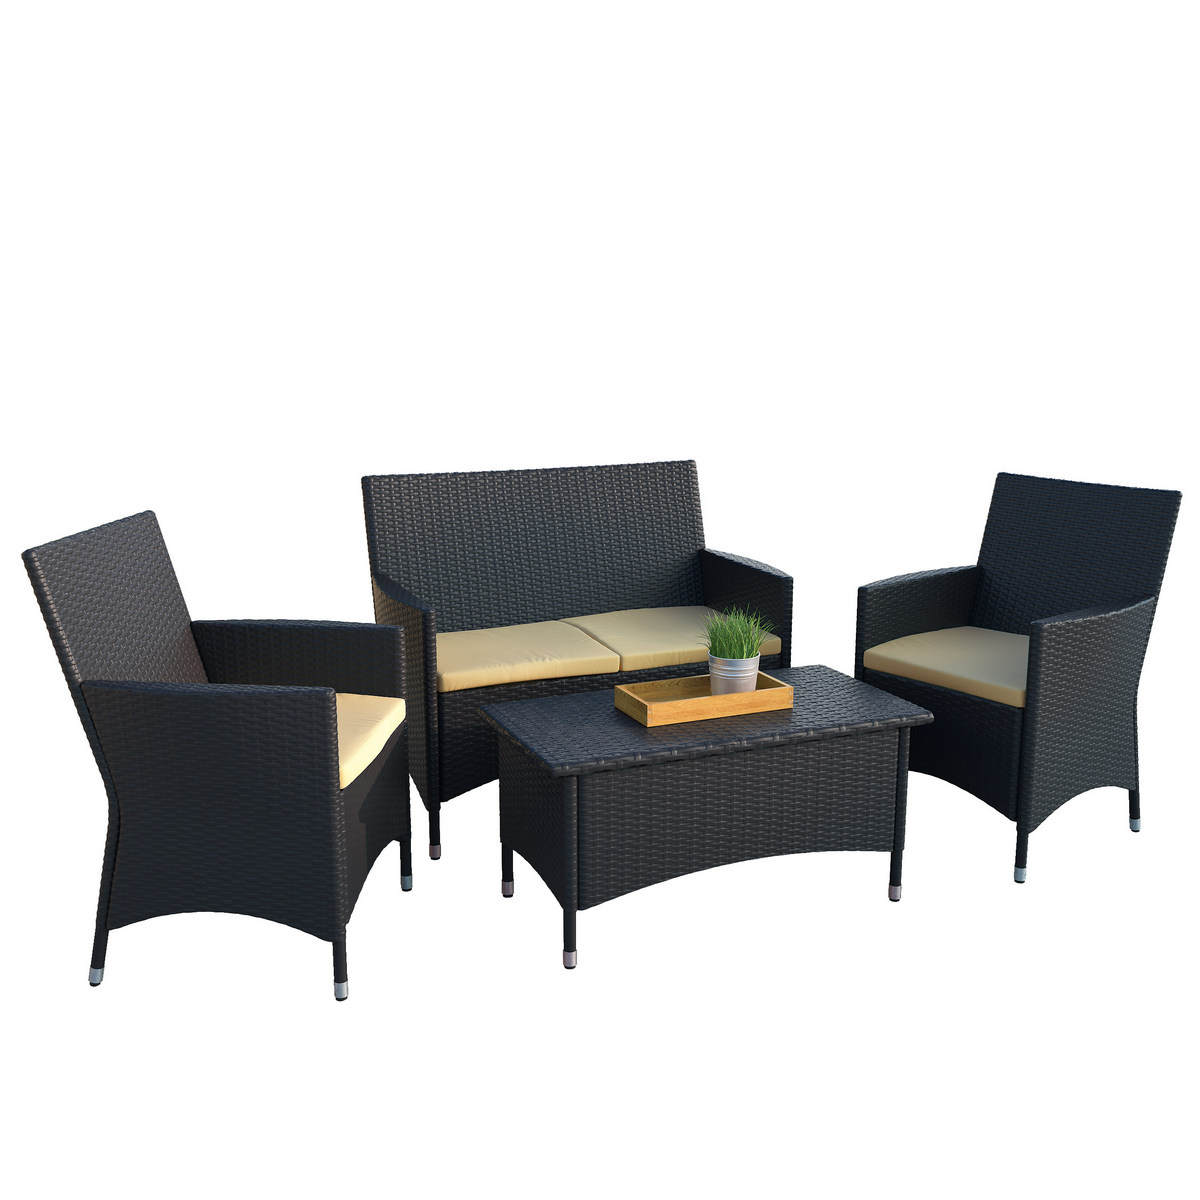 Corliving Pcd Patio Bench Coffee Table Set